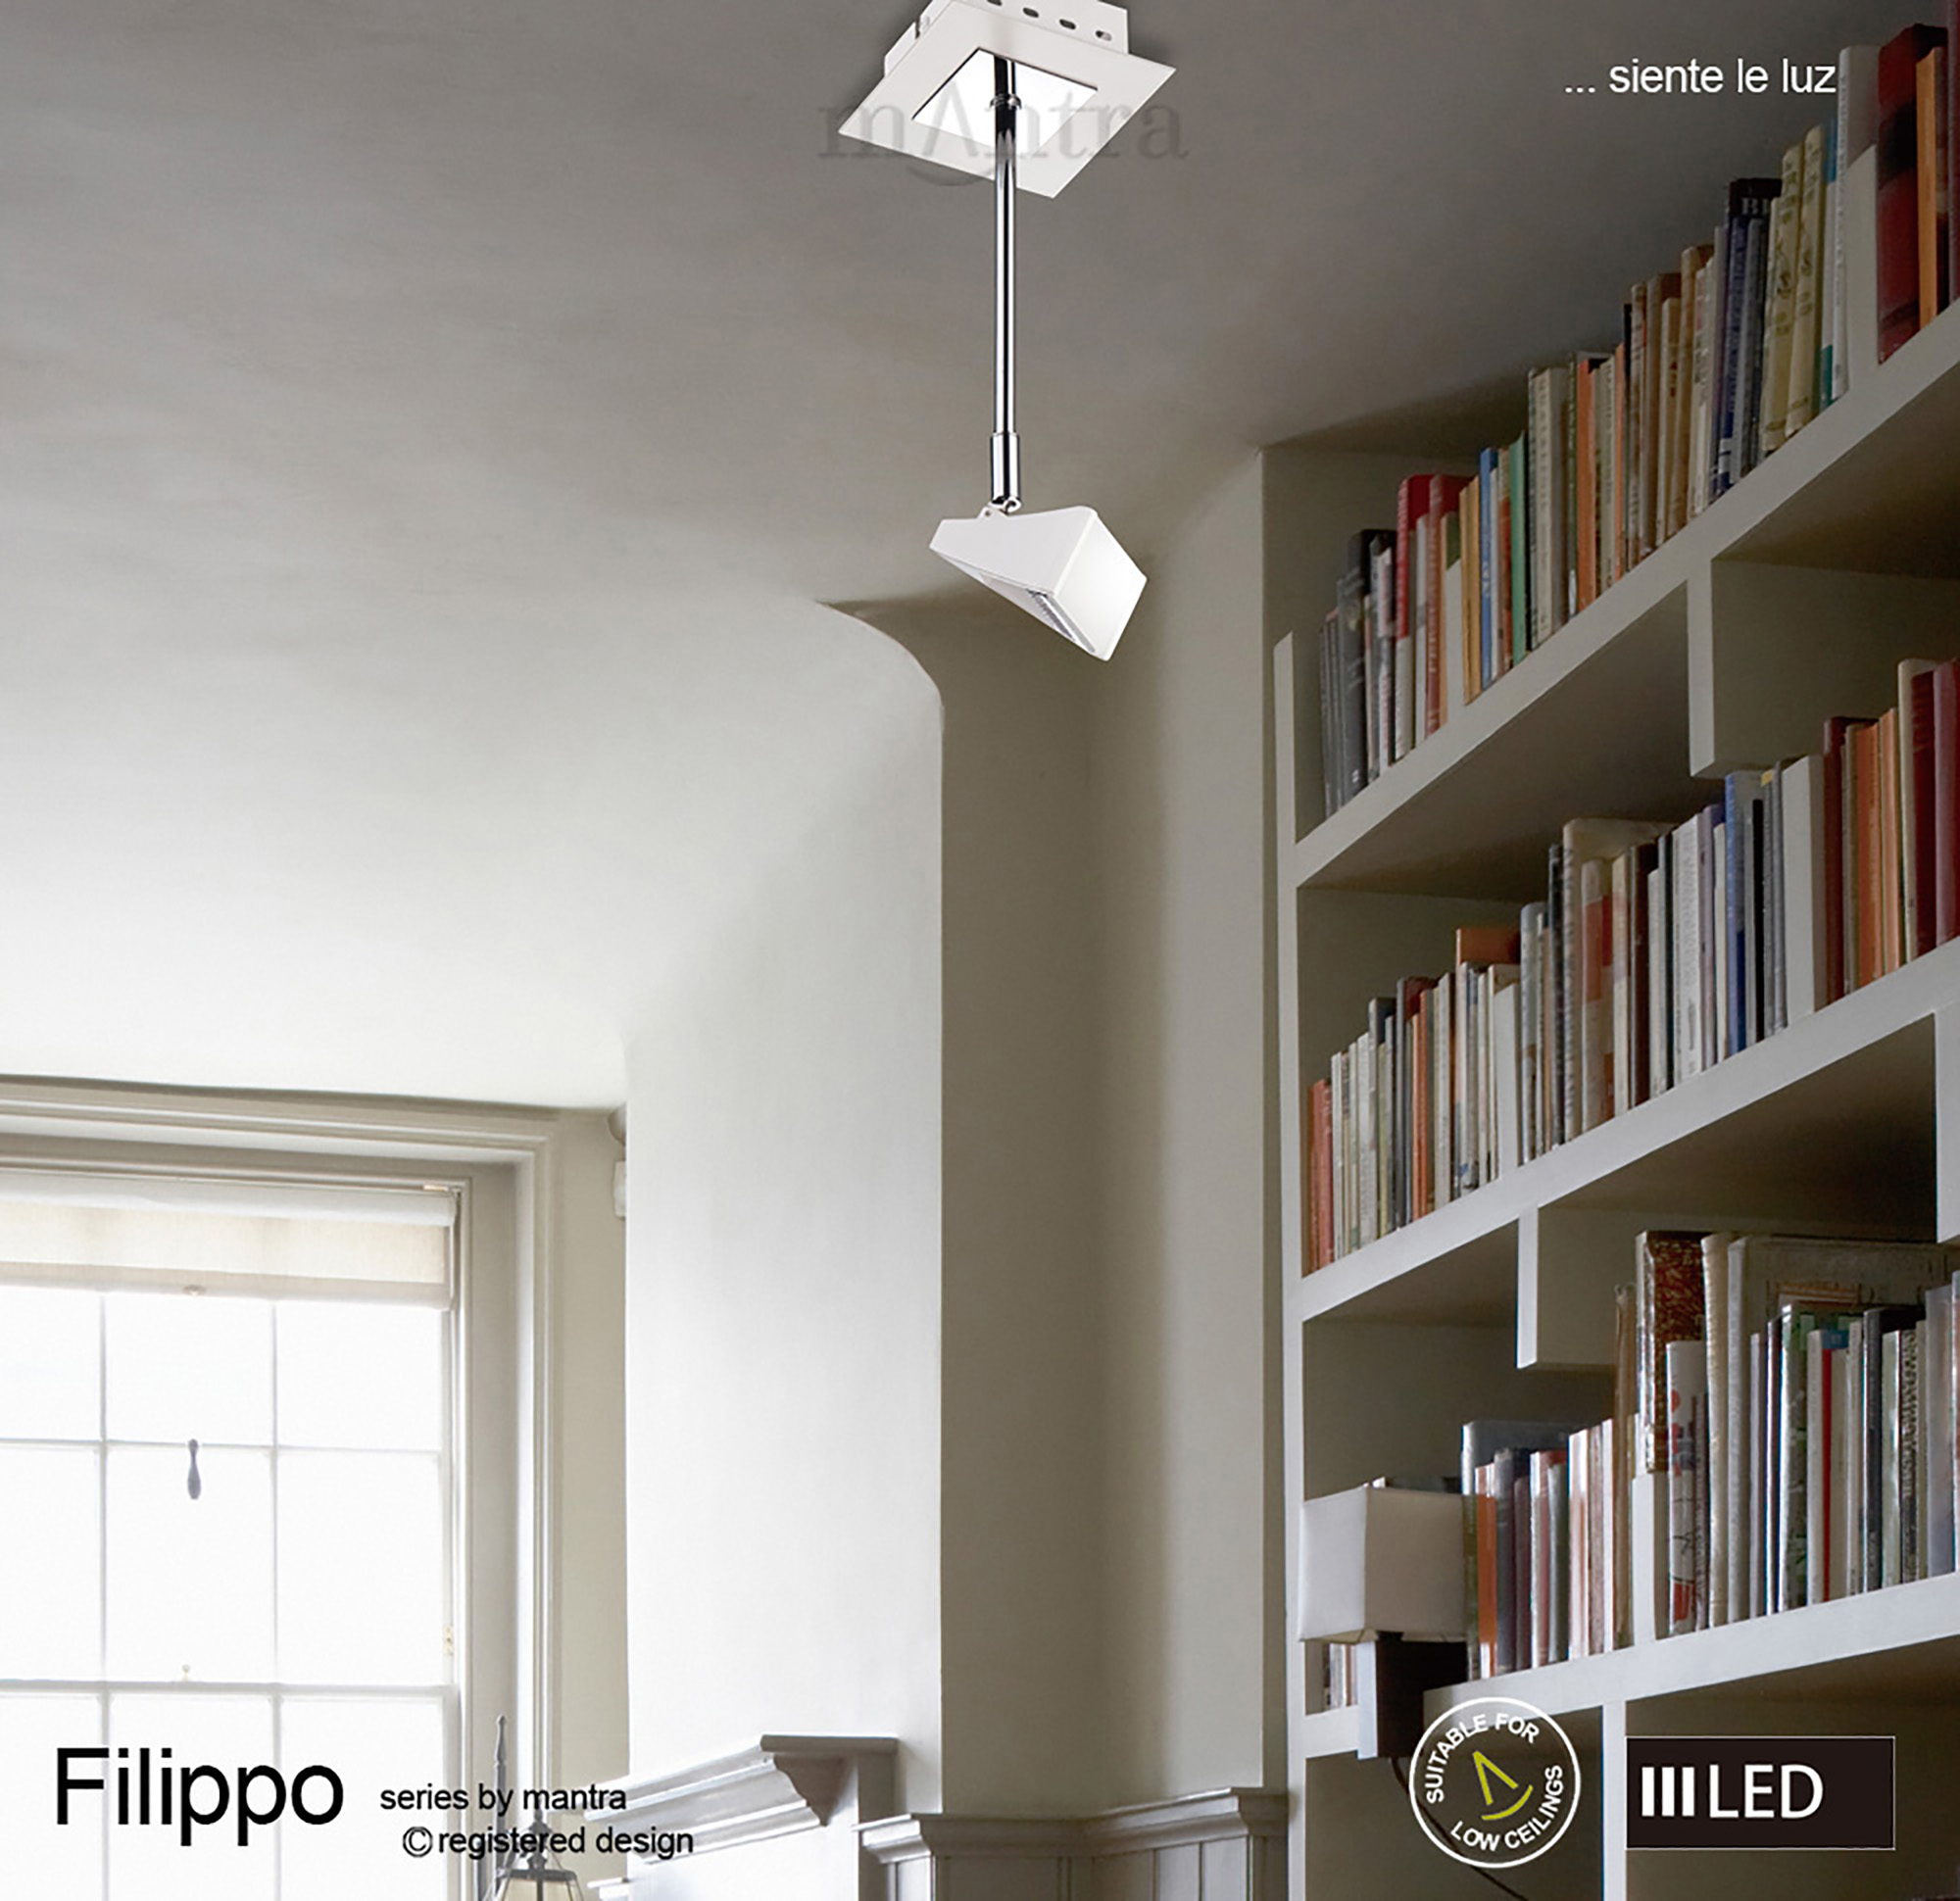 Filippo Ceiling Lights Mantra Surface Spot Lights